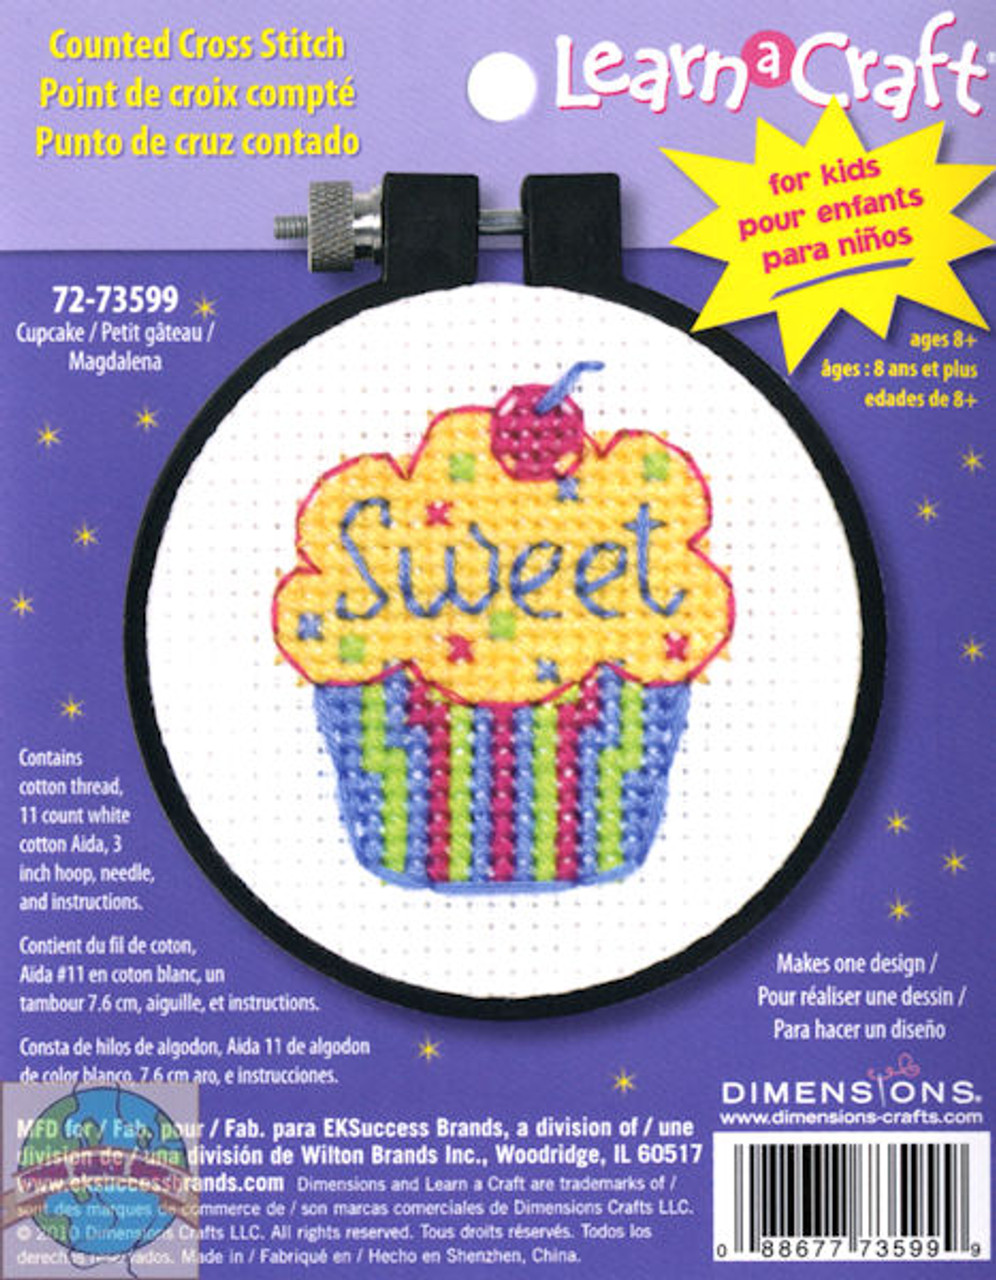 Learn a Craft for Kids - Cupcake